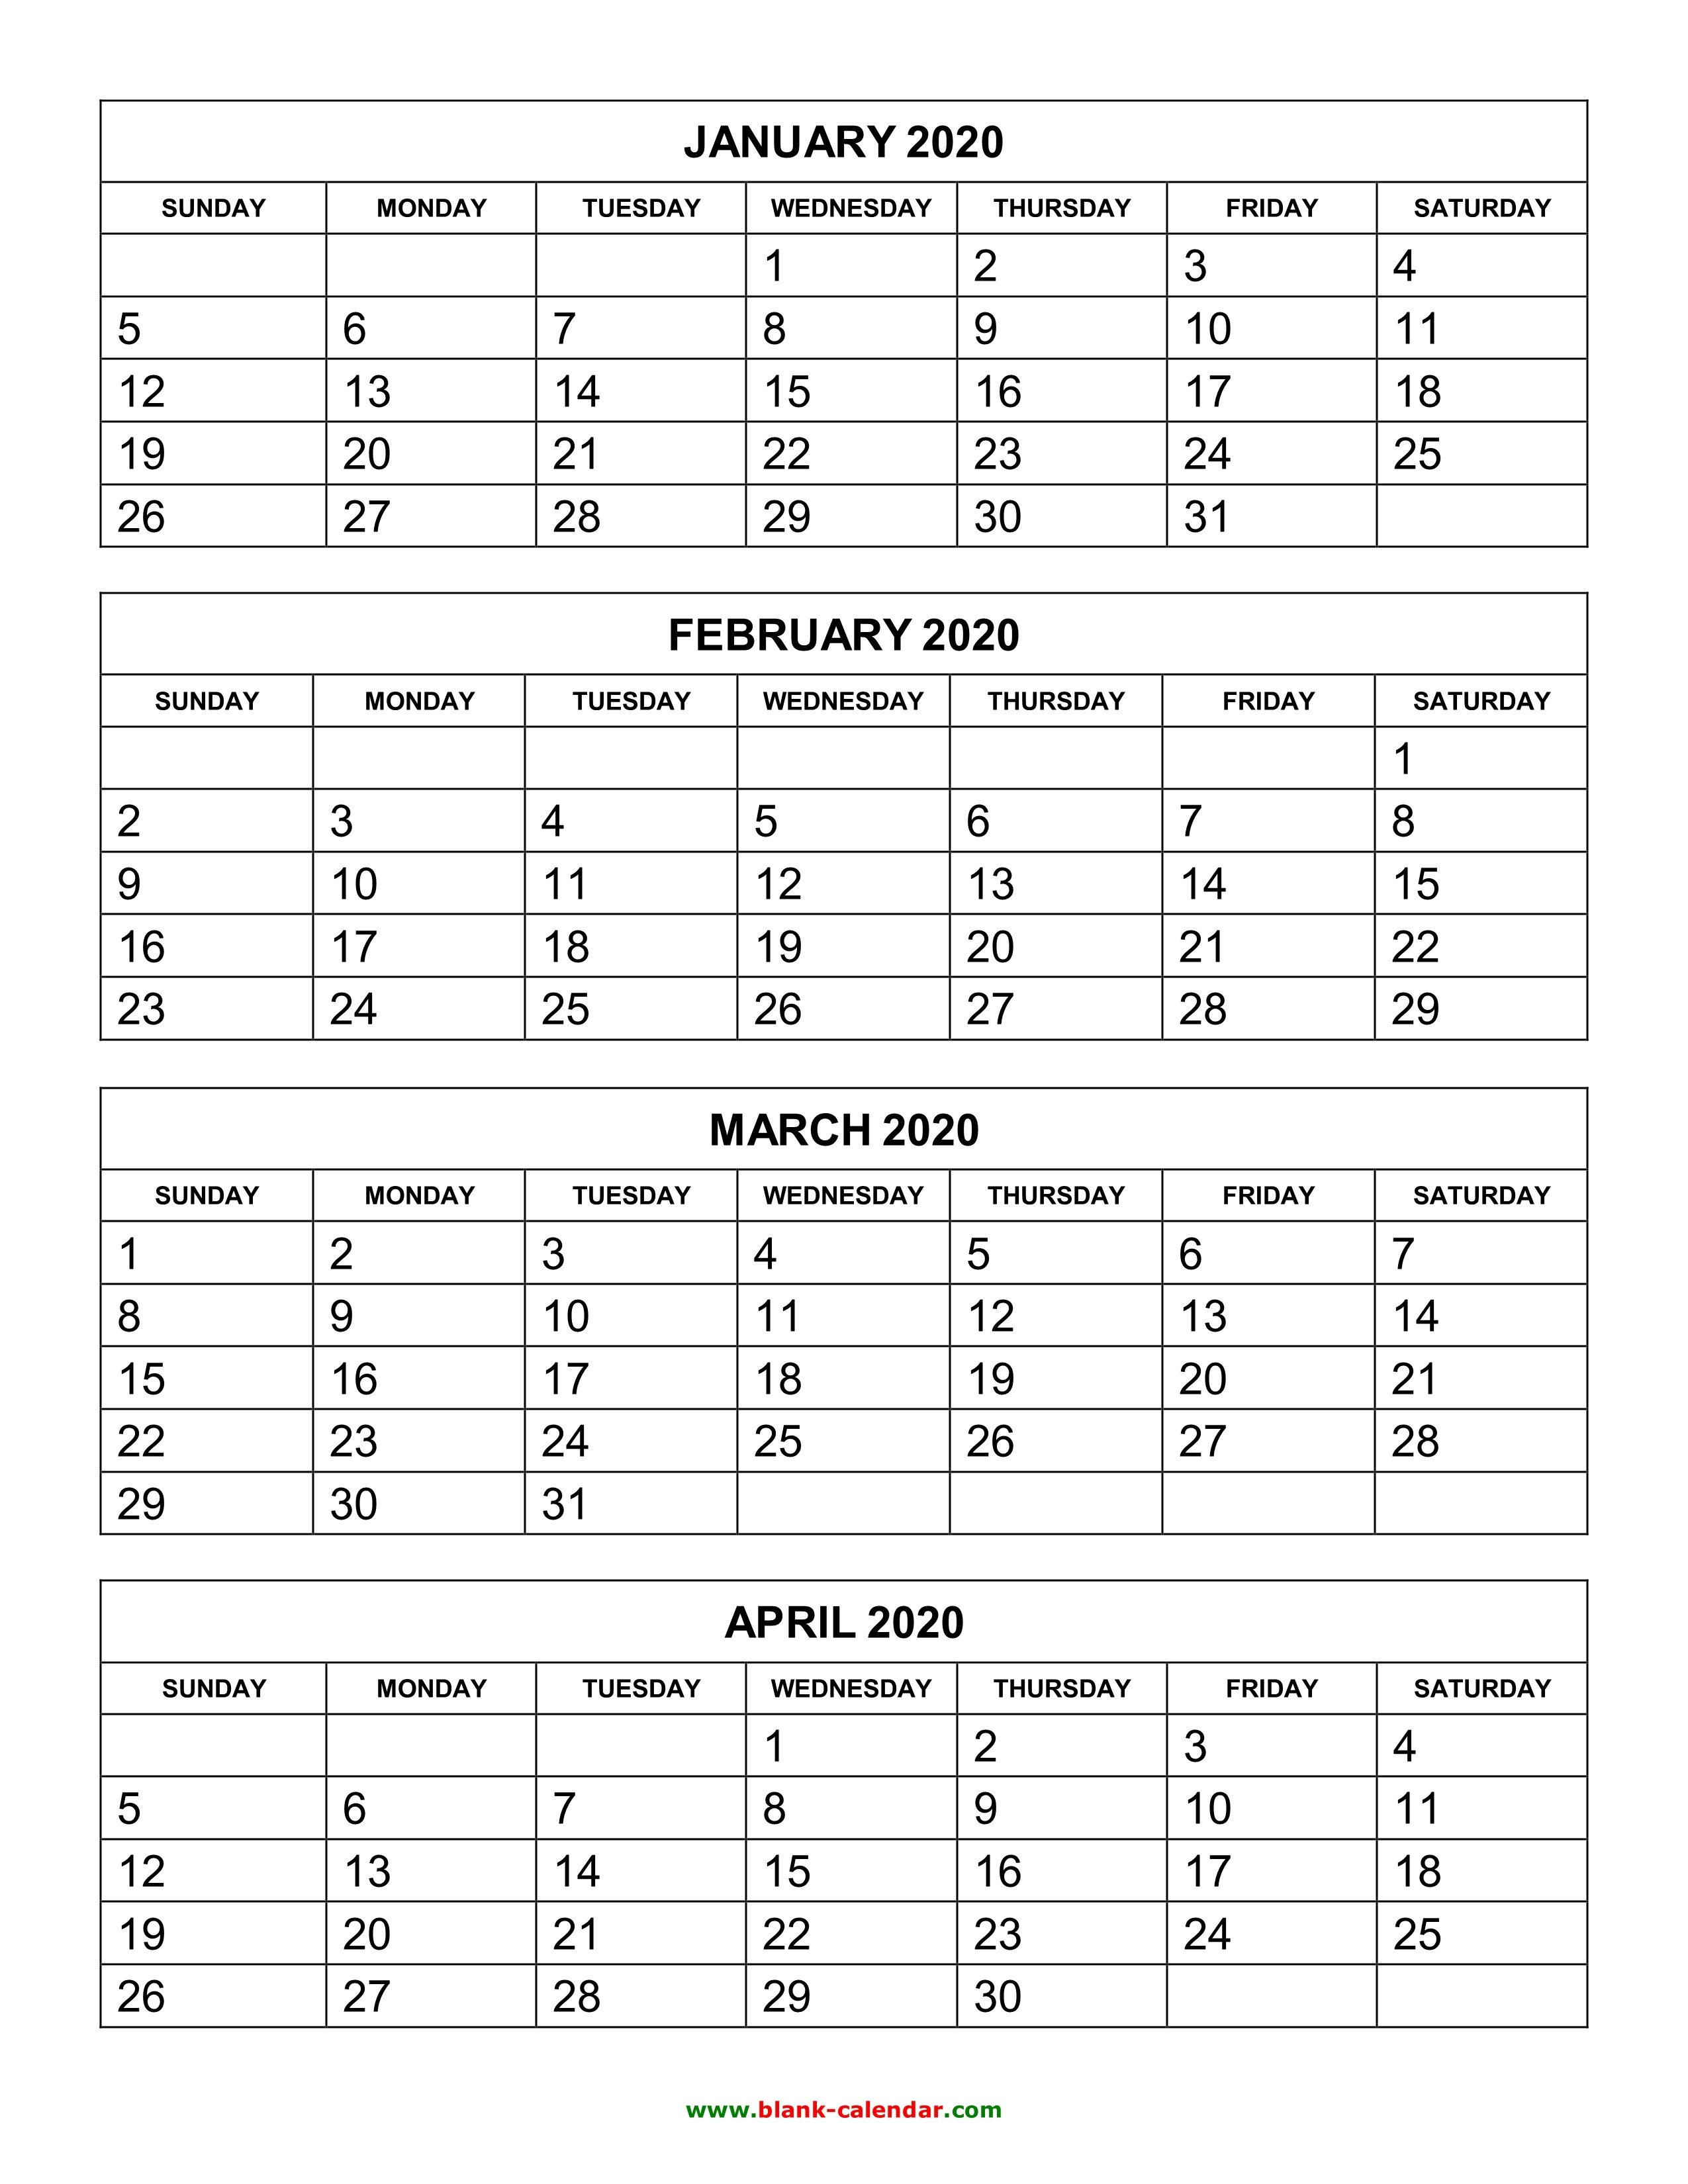 Free Download Printable Calendar 2020, 4 Months Per Page, 3 Pages_Blank Calendar 2020 3 Month